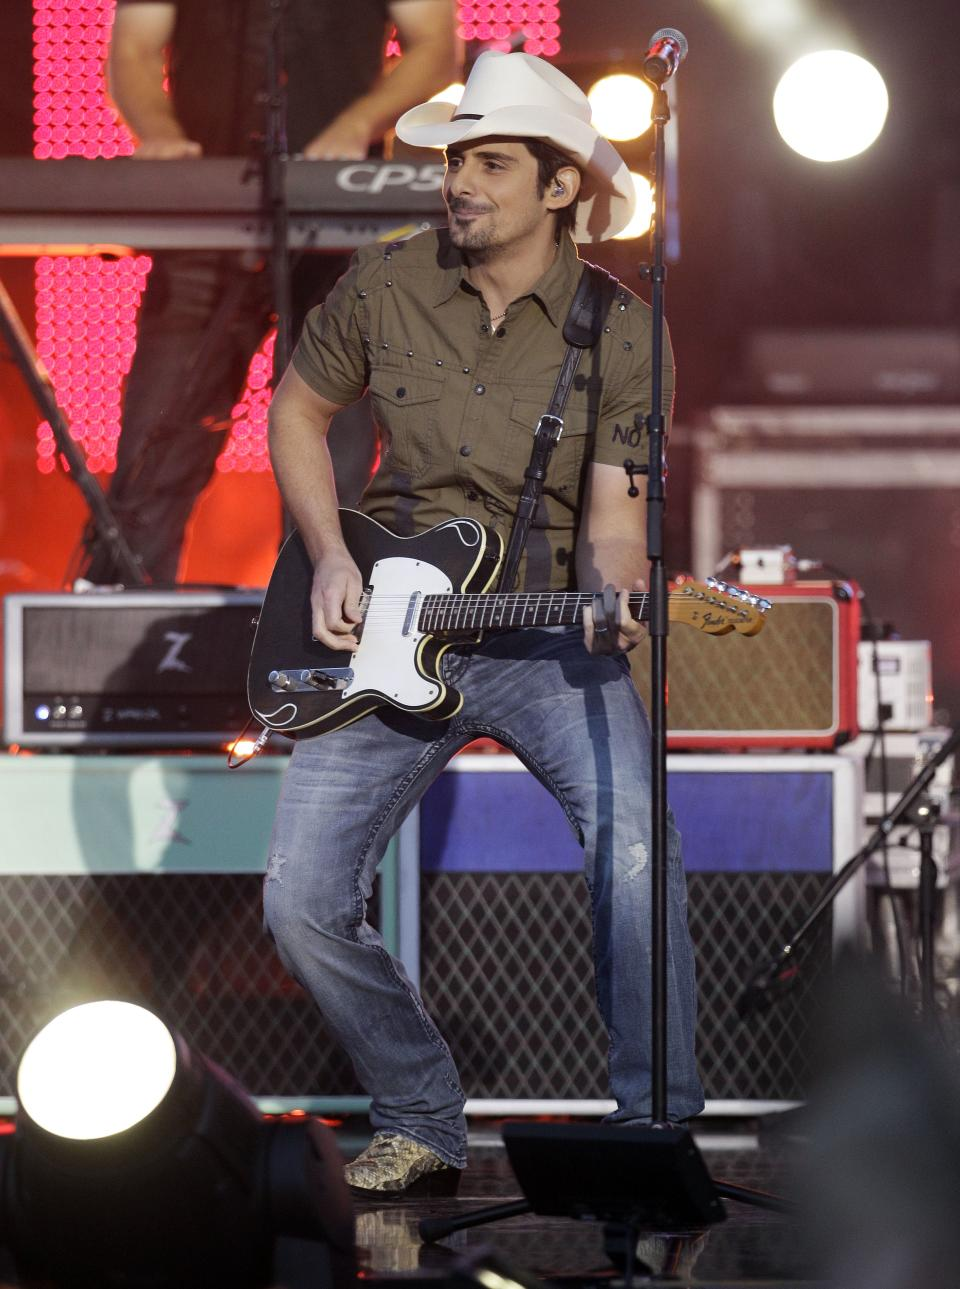 Brad Paisley performs on an outdoor stage during the CMT Music Awards show on Wednesday, June 6, 2012, in Nashville, Tenn. (AP Photo/Mark Humphrey)